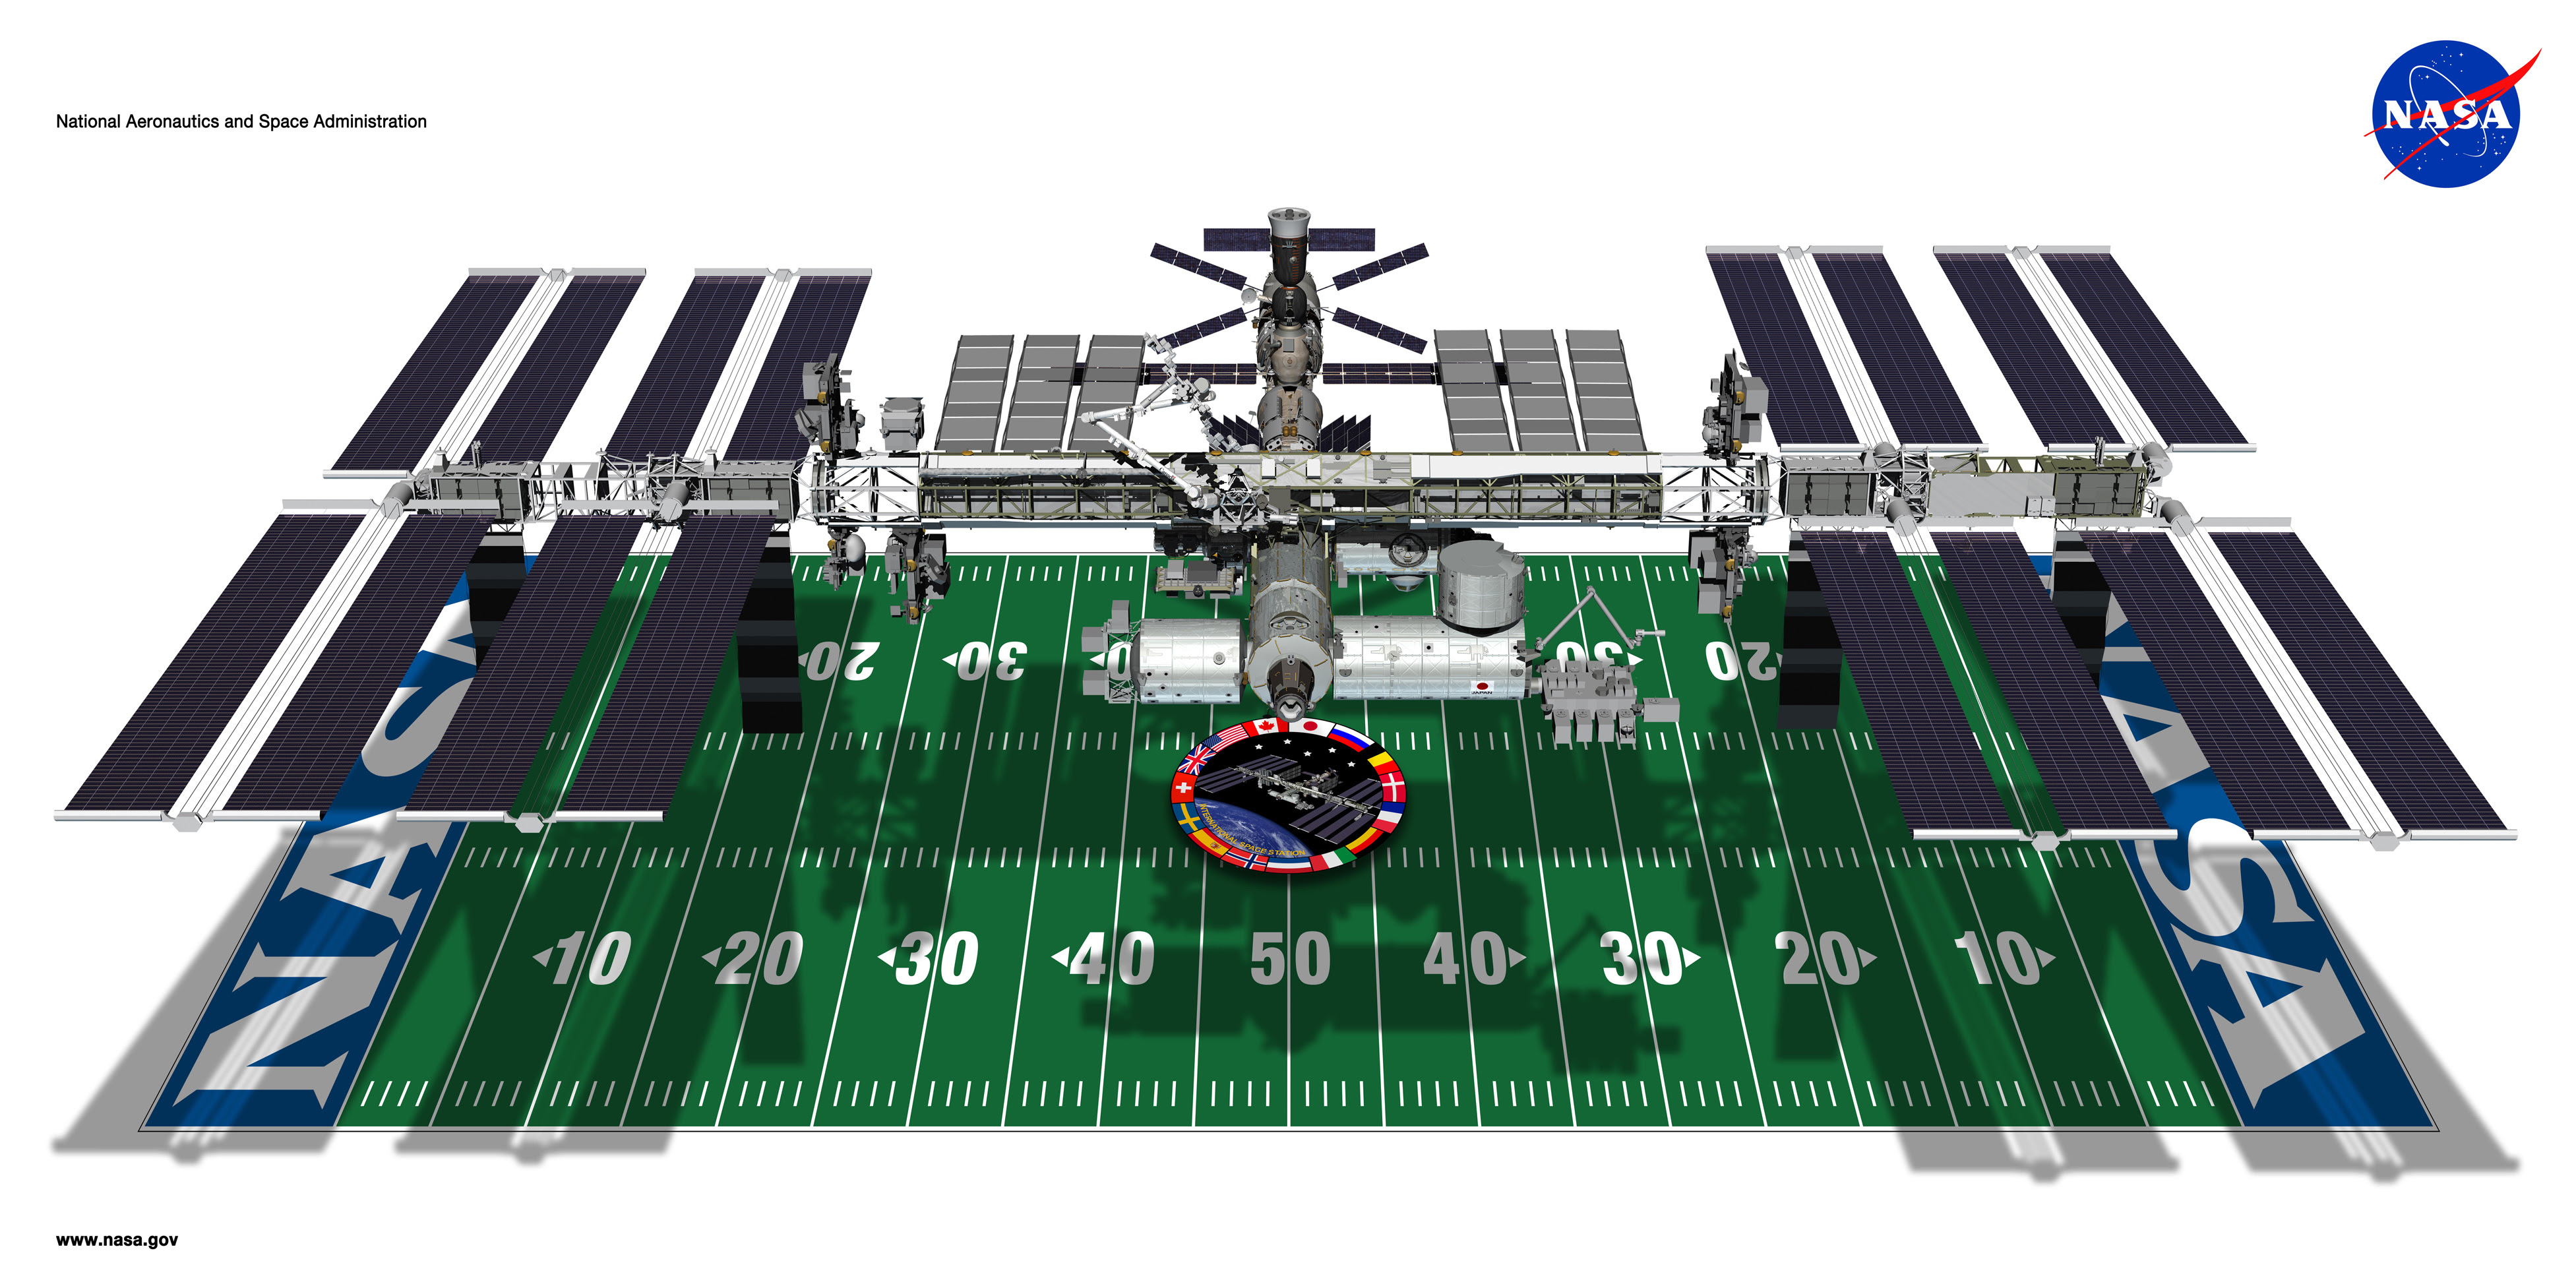 Astronauts Will Watch Super Bowl From Space Technology